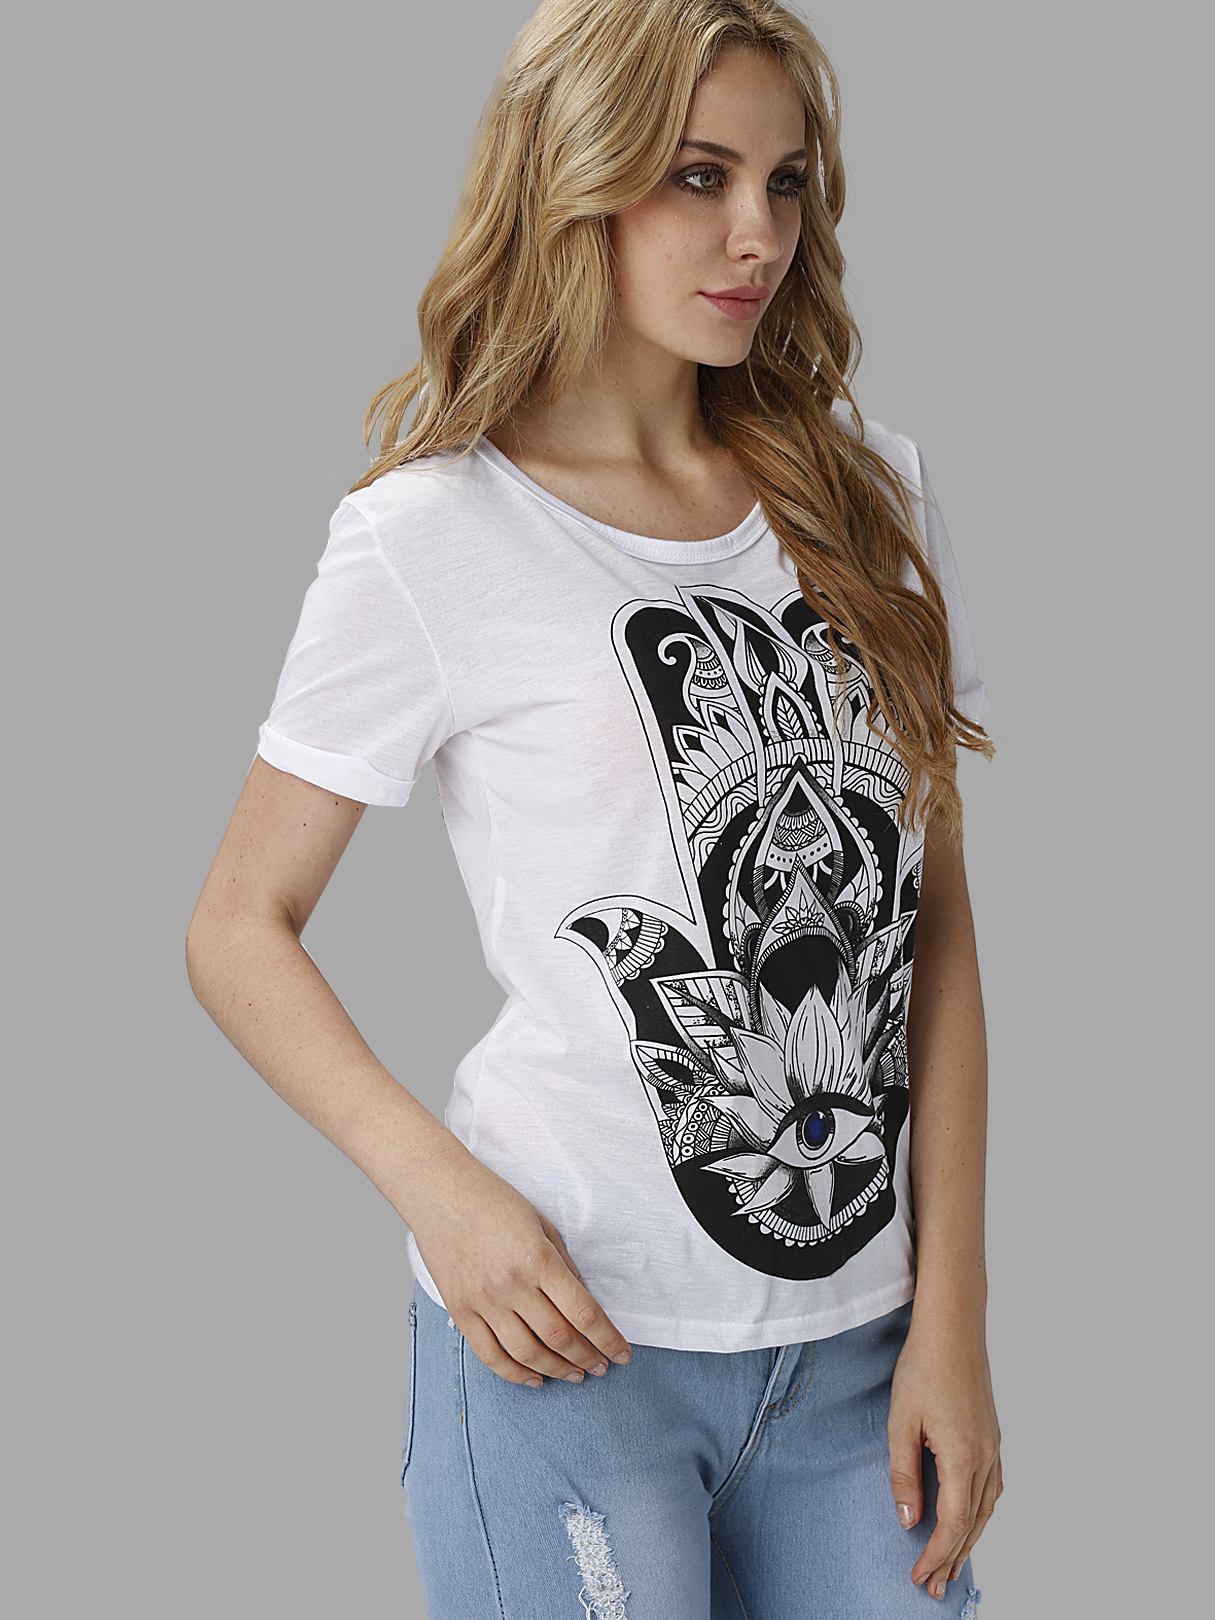 Basic Style See-through White Round Neck T-shirt with Hand Pattern pyramida basic casa 50k white